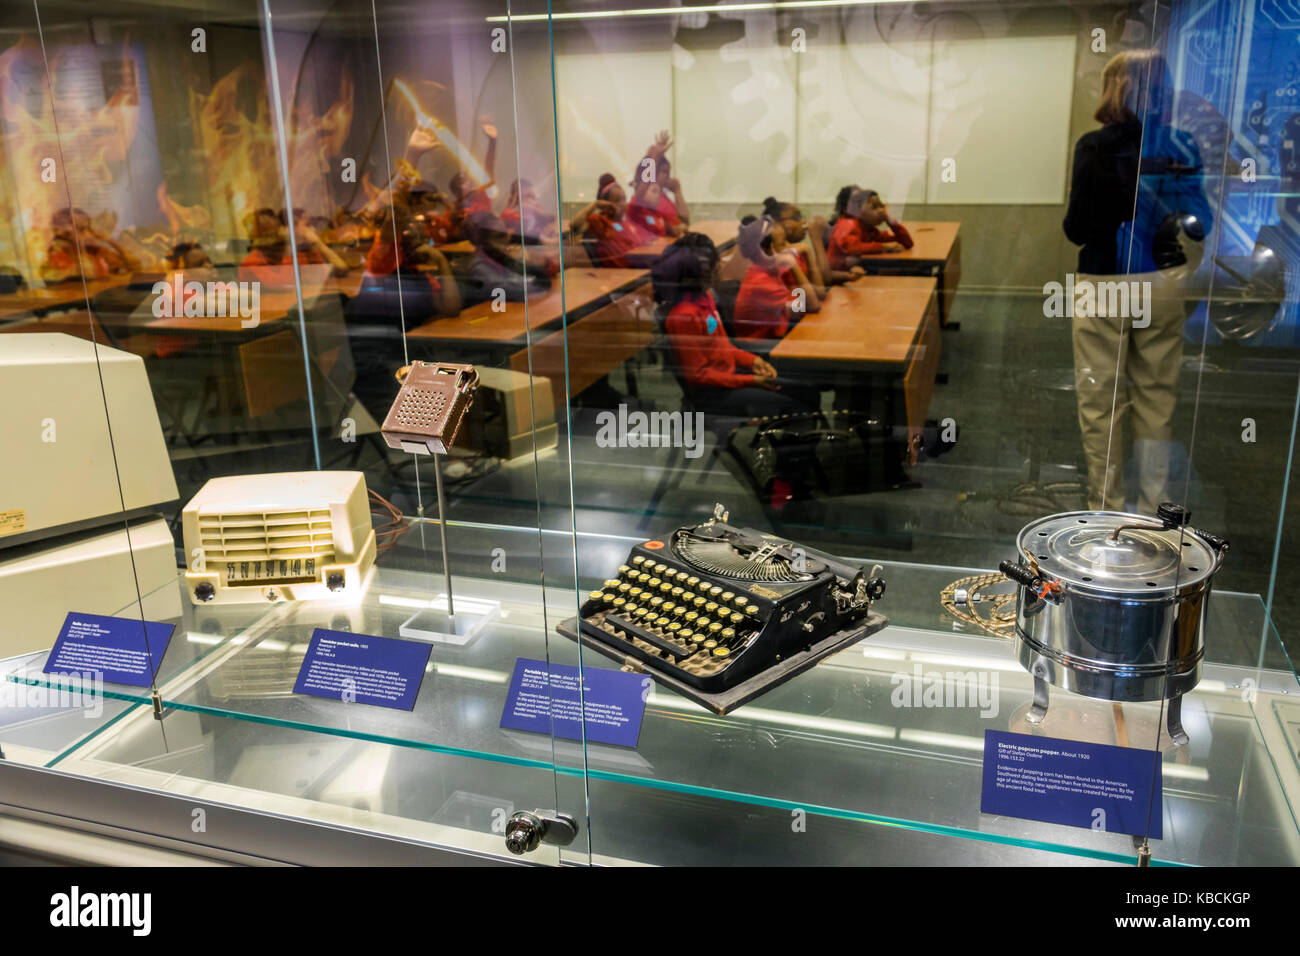 Richmond Virginia Virginia Historical Society museum exhibition classroom Stone Bits to Computer Chips technology - Stock Image